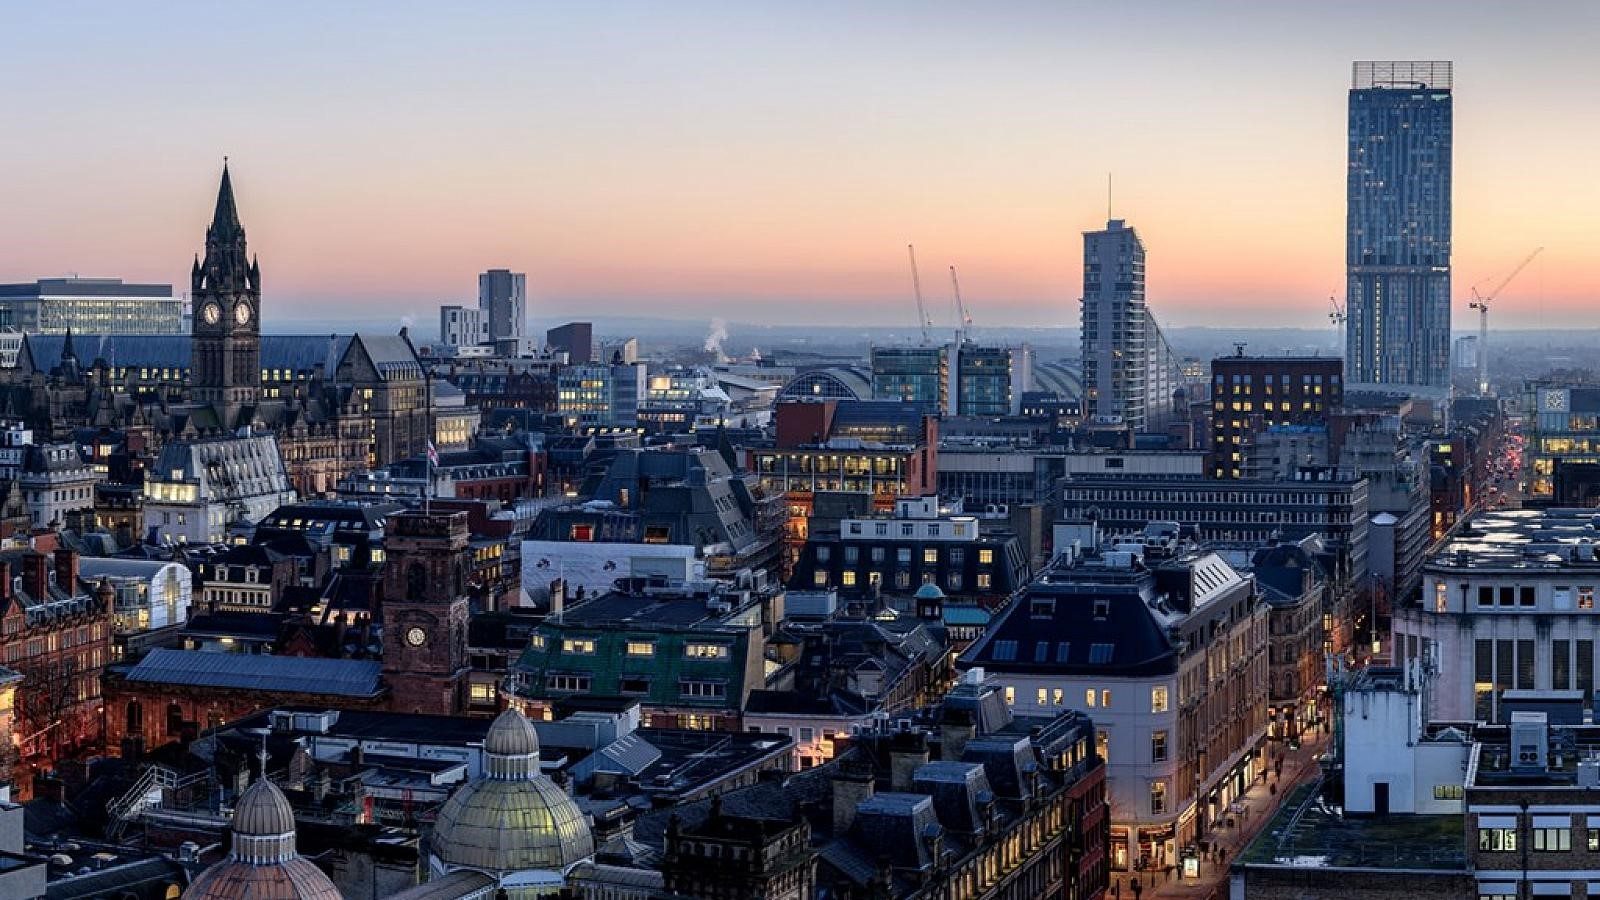 Manchester ranked #1 for jobs and population growth, closely followed by Birmingham, Leeds and Liverpool